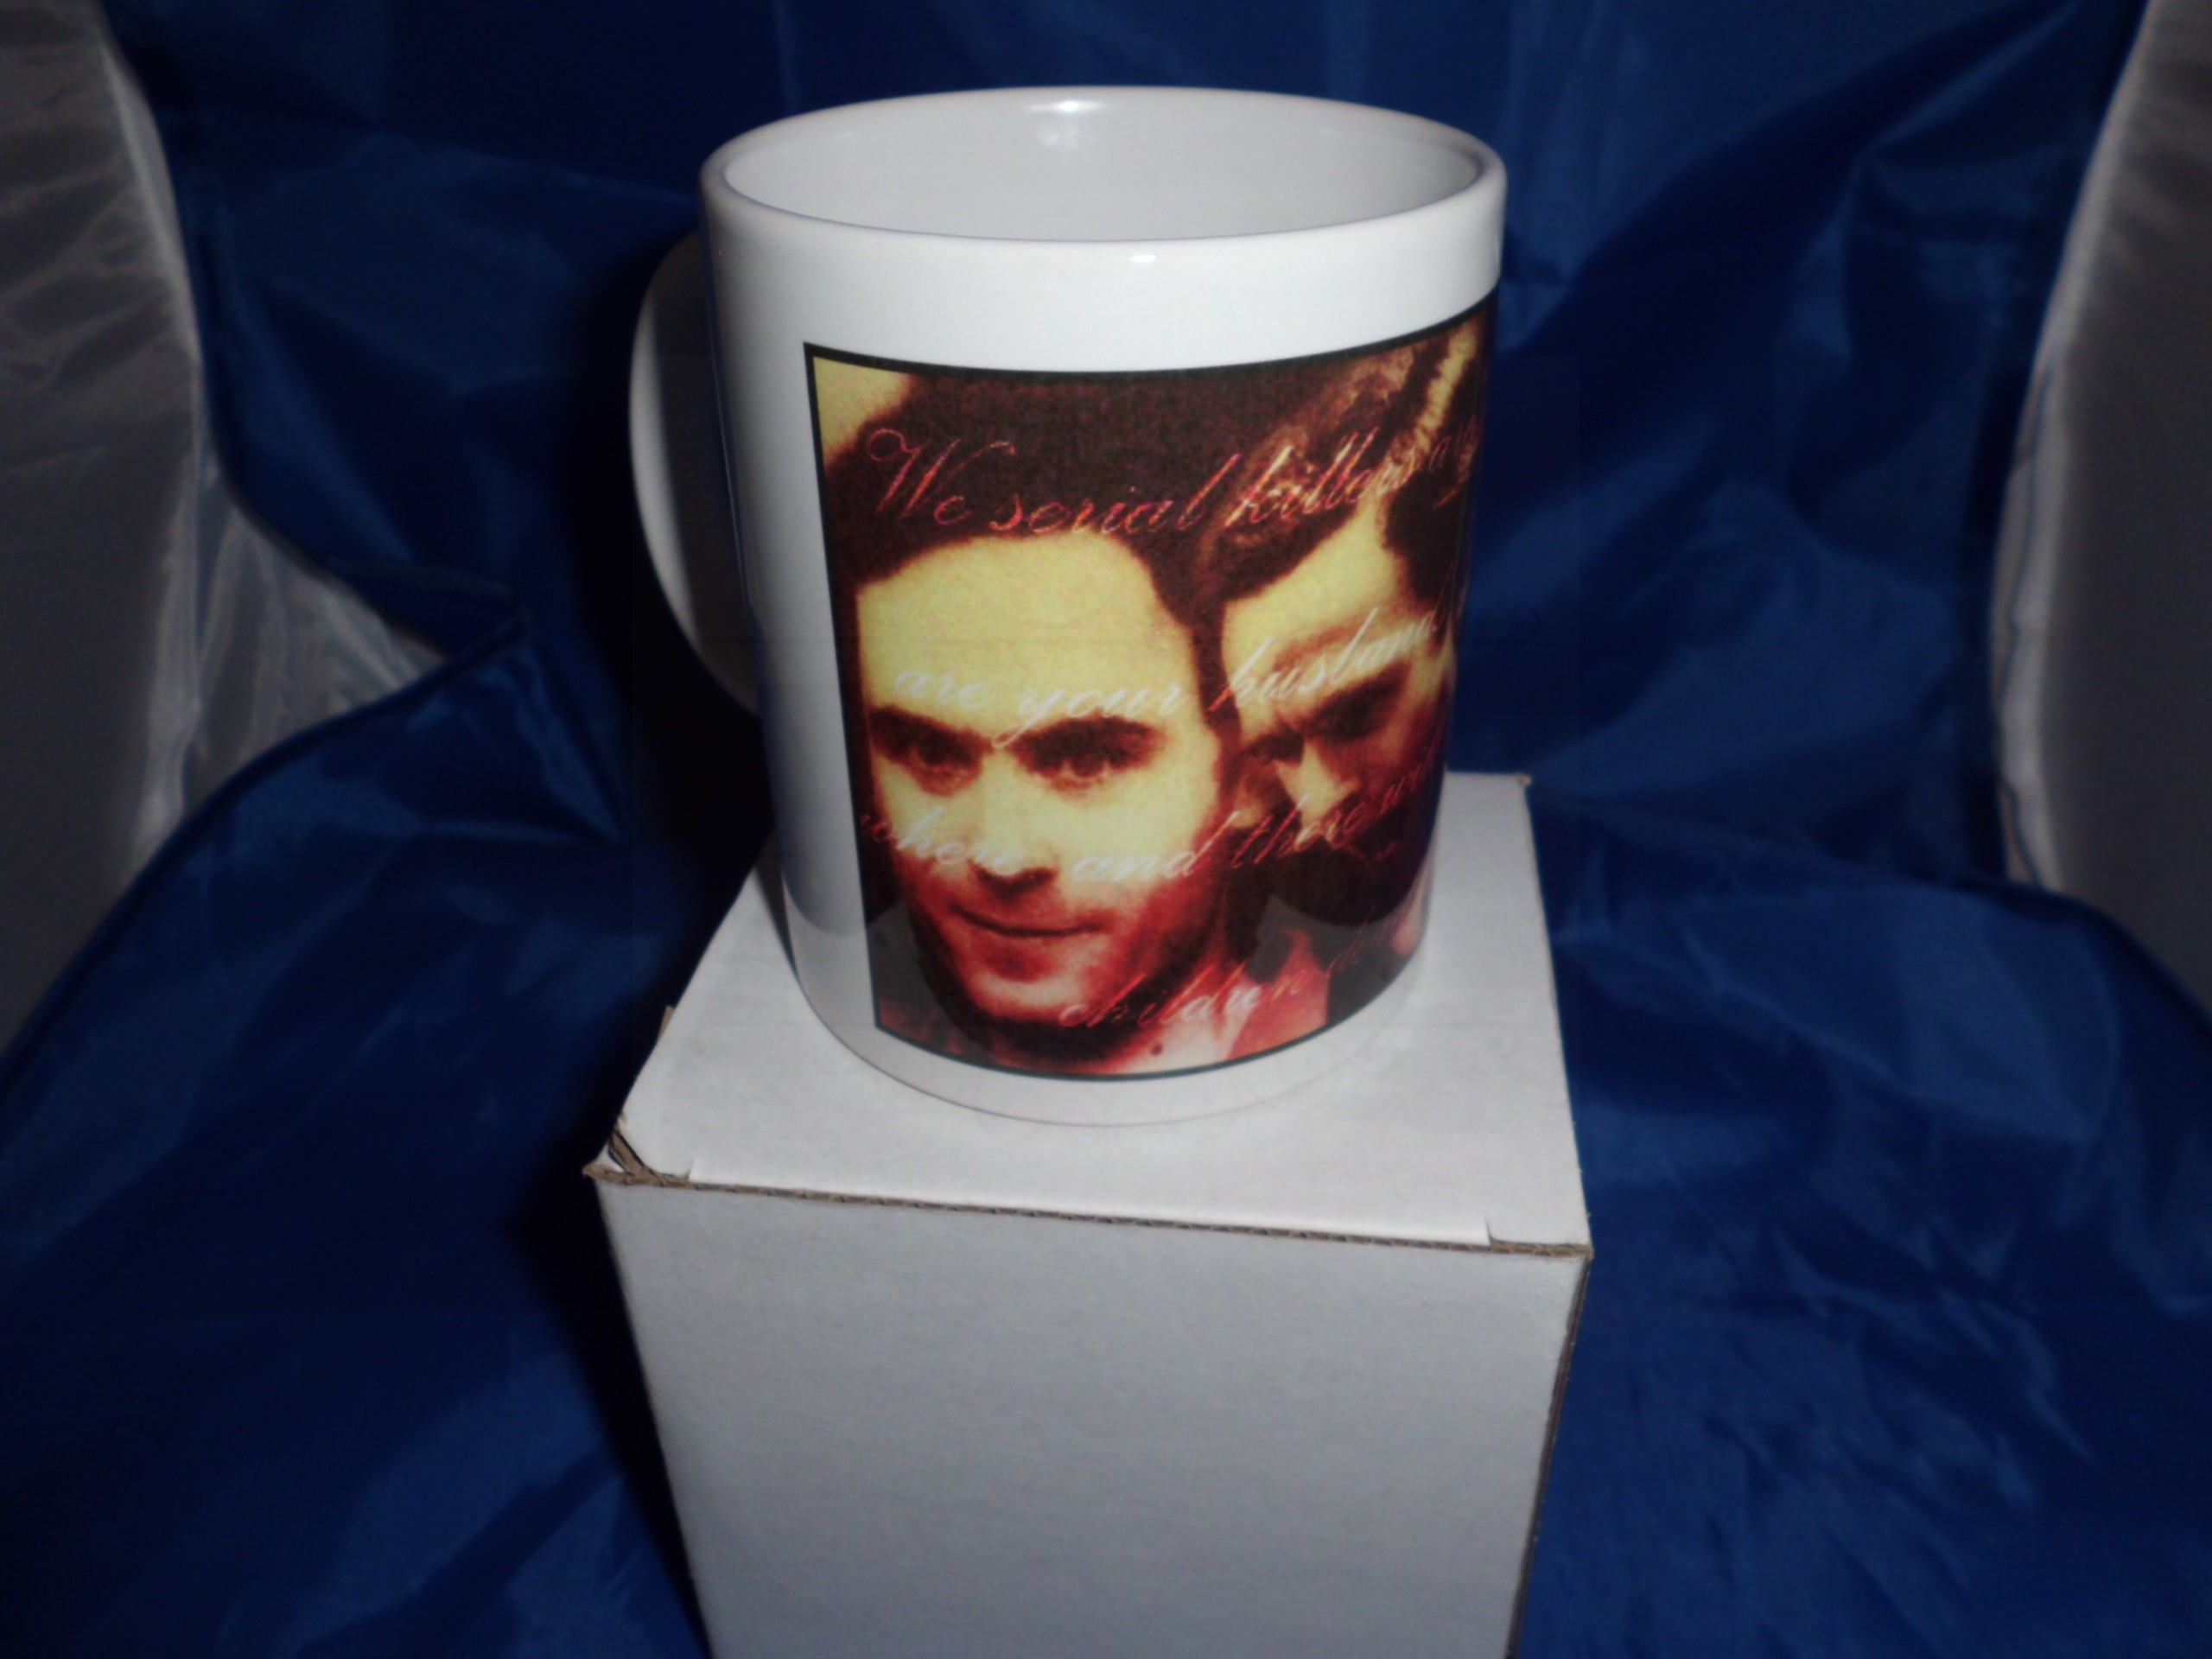 Ted Bundy 2nd edition personalised mug